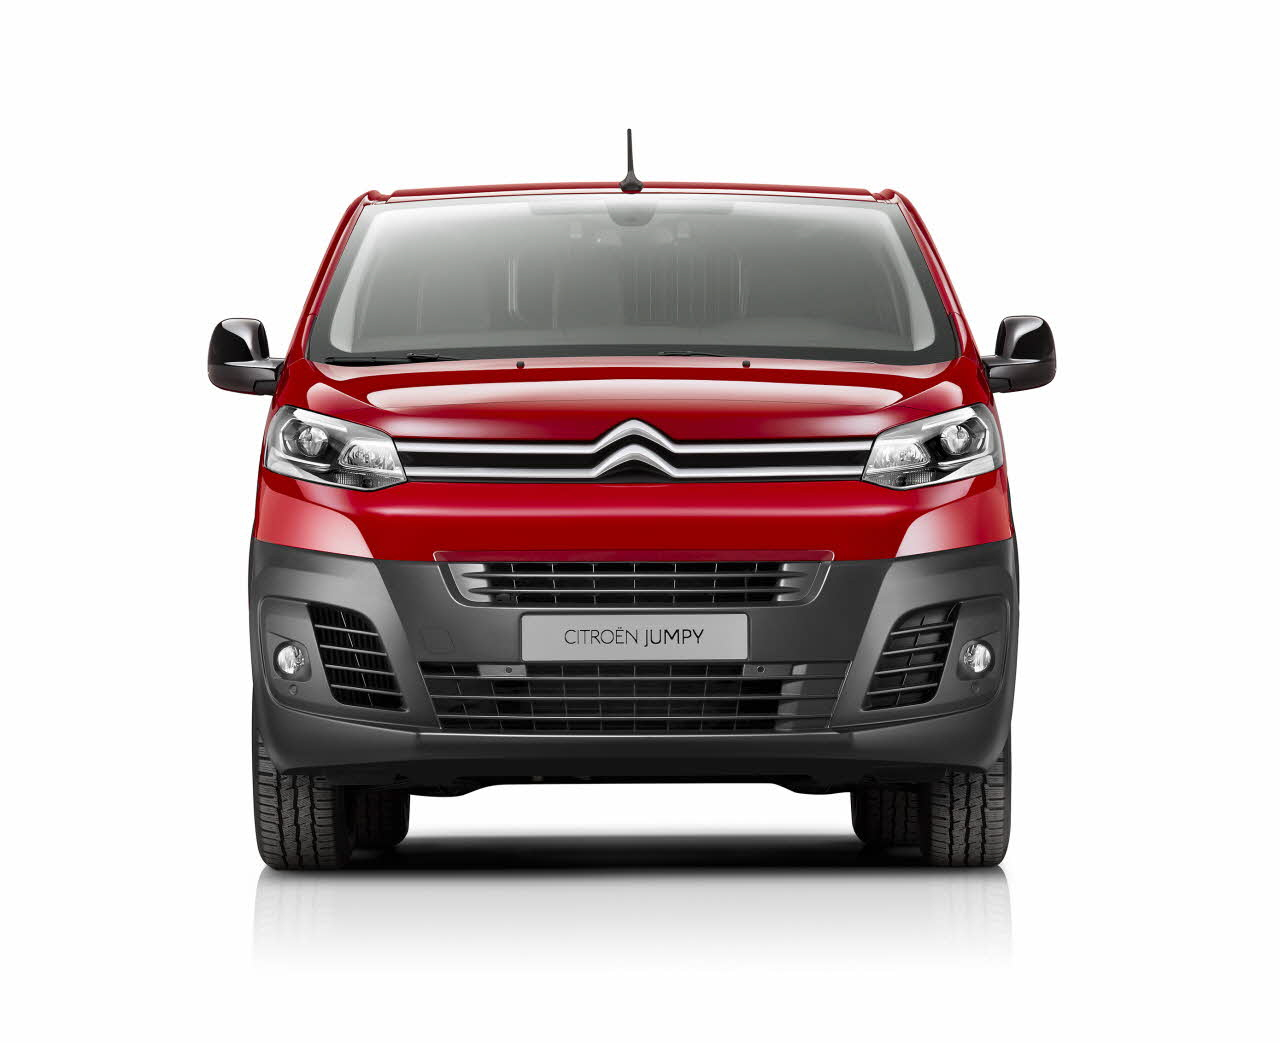 new citroen jumpy peugeot expert detailed 130 pics video carscoops. Black Bedroom Furniture Sets. Home Design Ideas